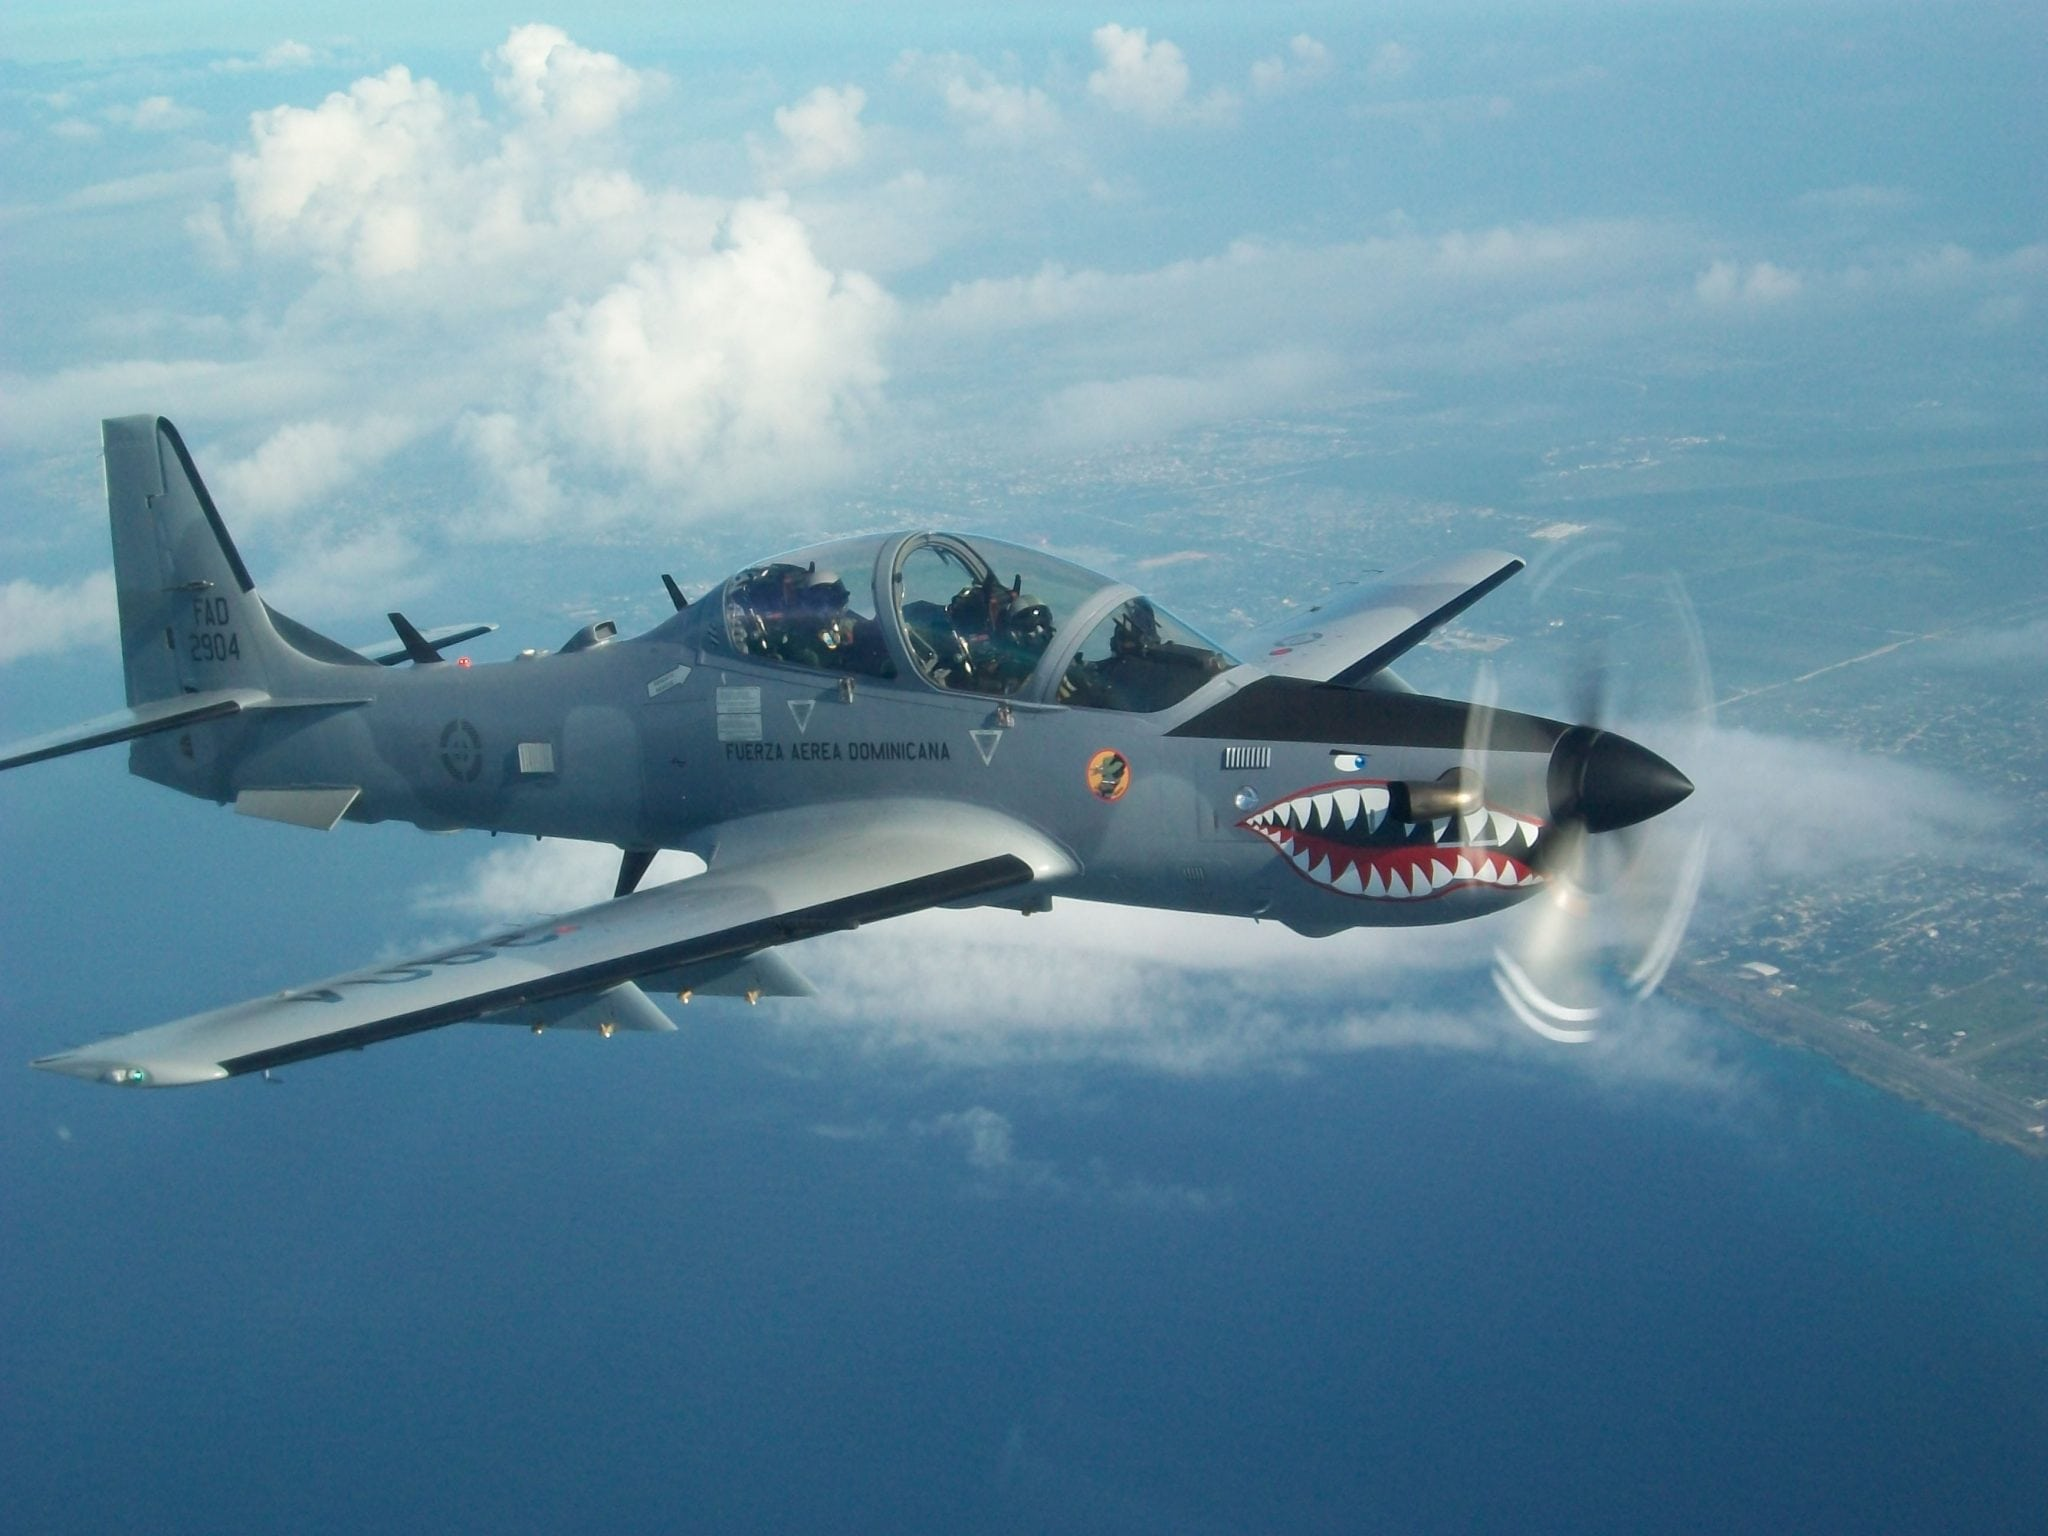 Super_Tucano_on_Patrol_over_the_skies_of_the_Dominican